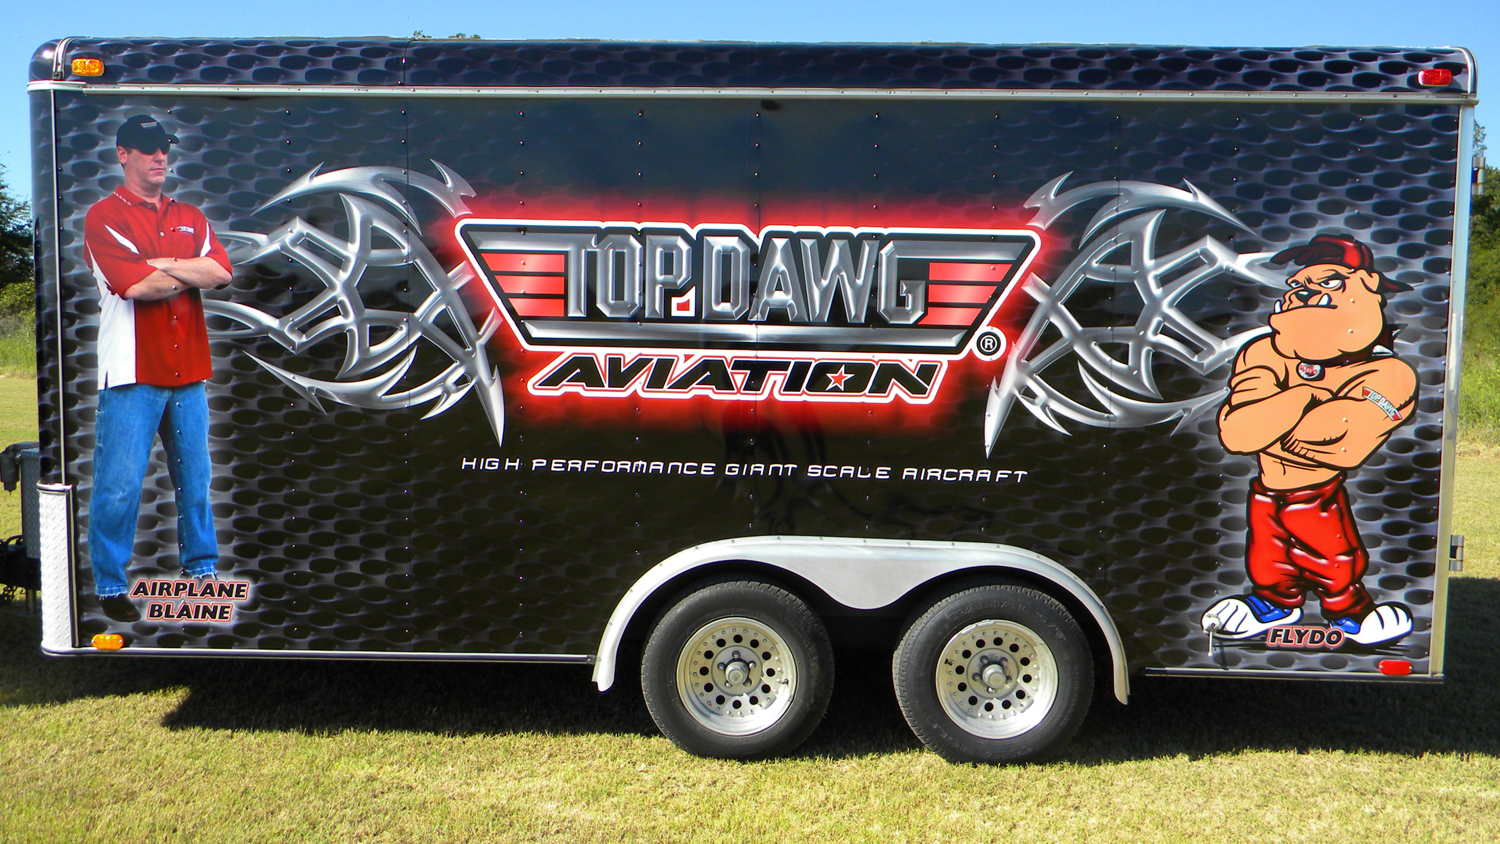 Top Dawg Aviation Trailer Wrap Sign Dimensions